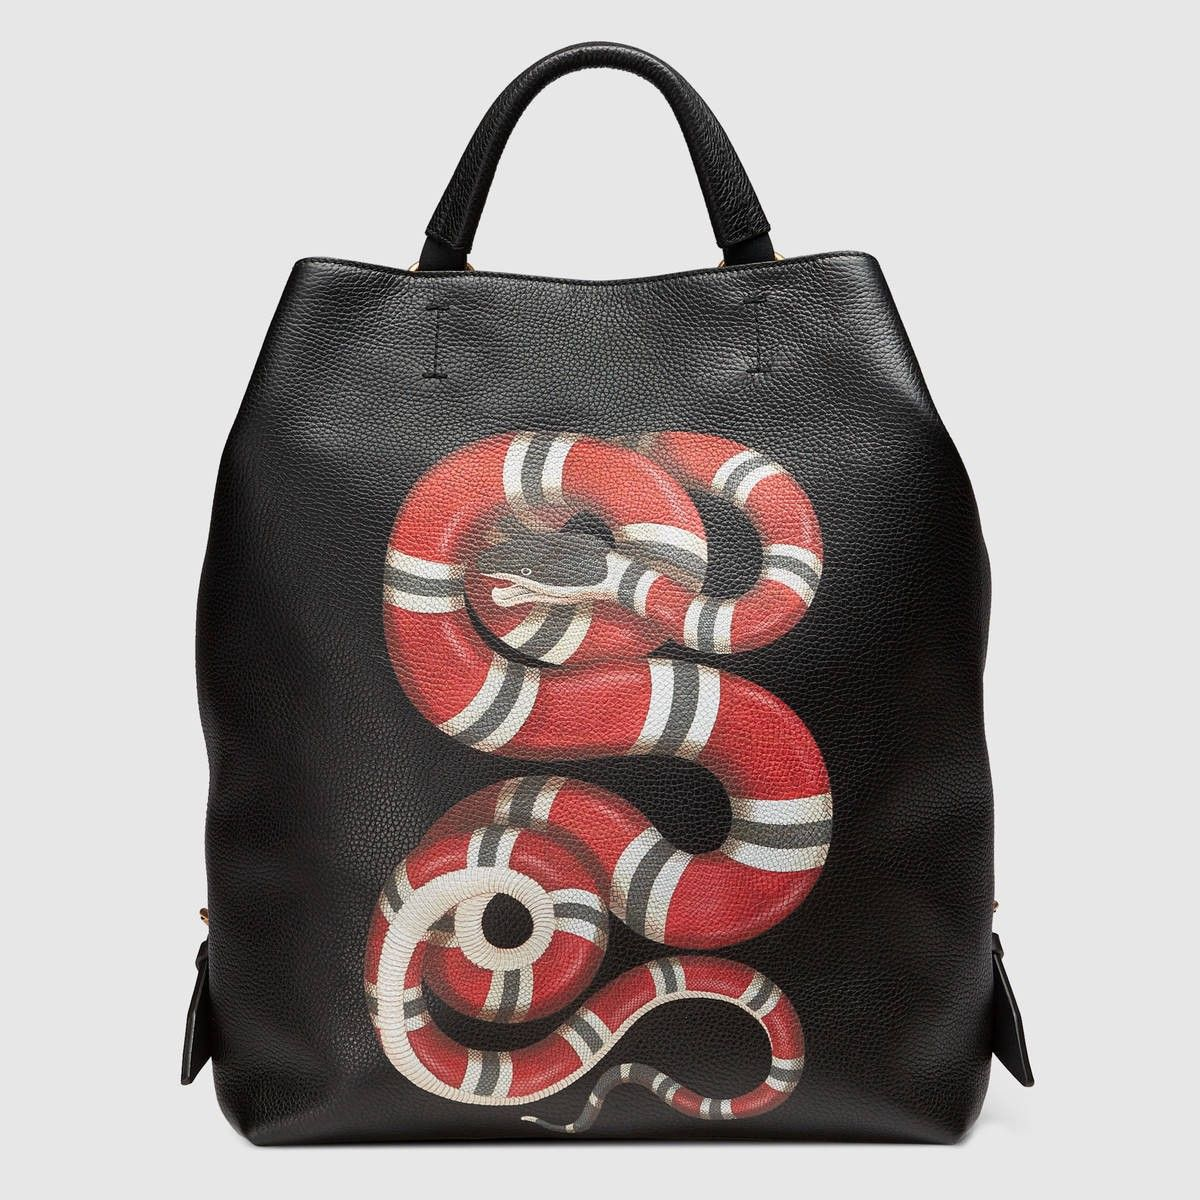 9bbe6c1d534e94 GUCCI Kingsnake print leather backpack - black leather. #gucci #bags  #leather #lining #backpacks #linen #cotton #